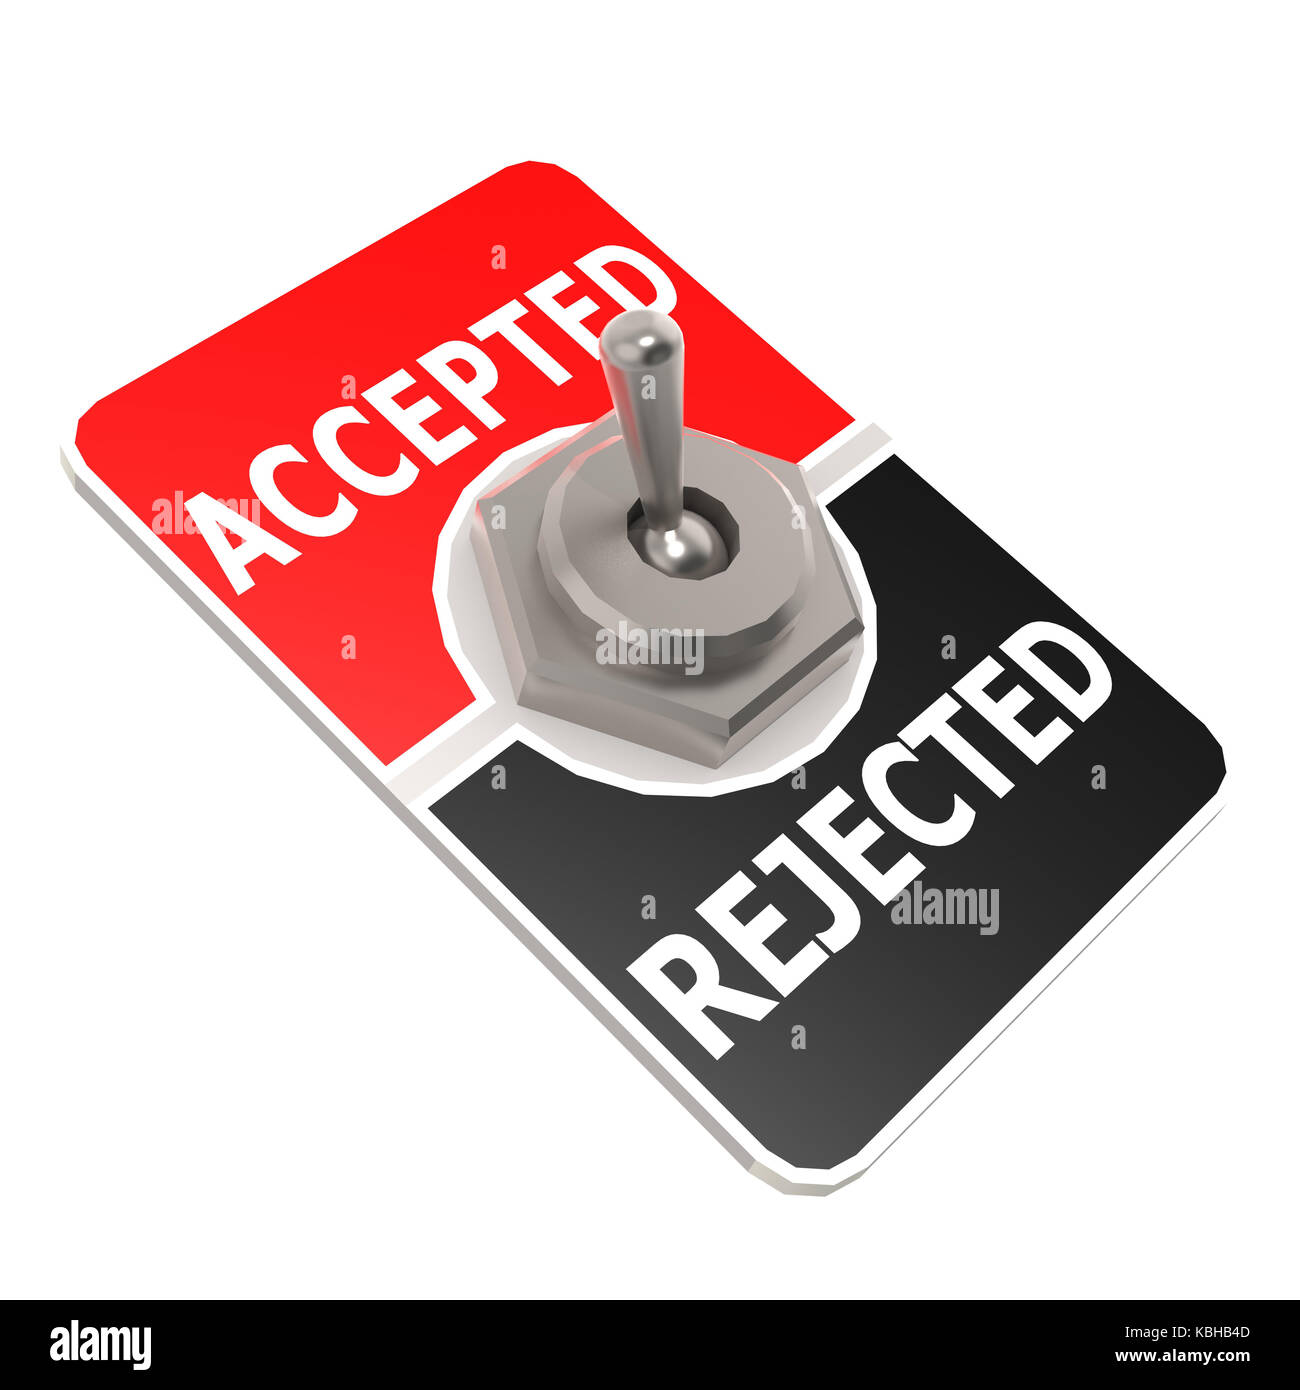 Accepted and rejected toggle switch image with hi-res rendered artwork that could be used for any graphic design. - Stock Image